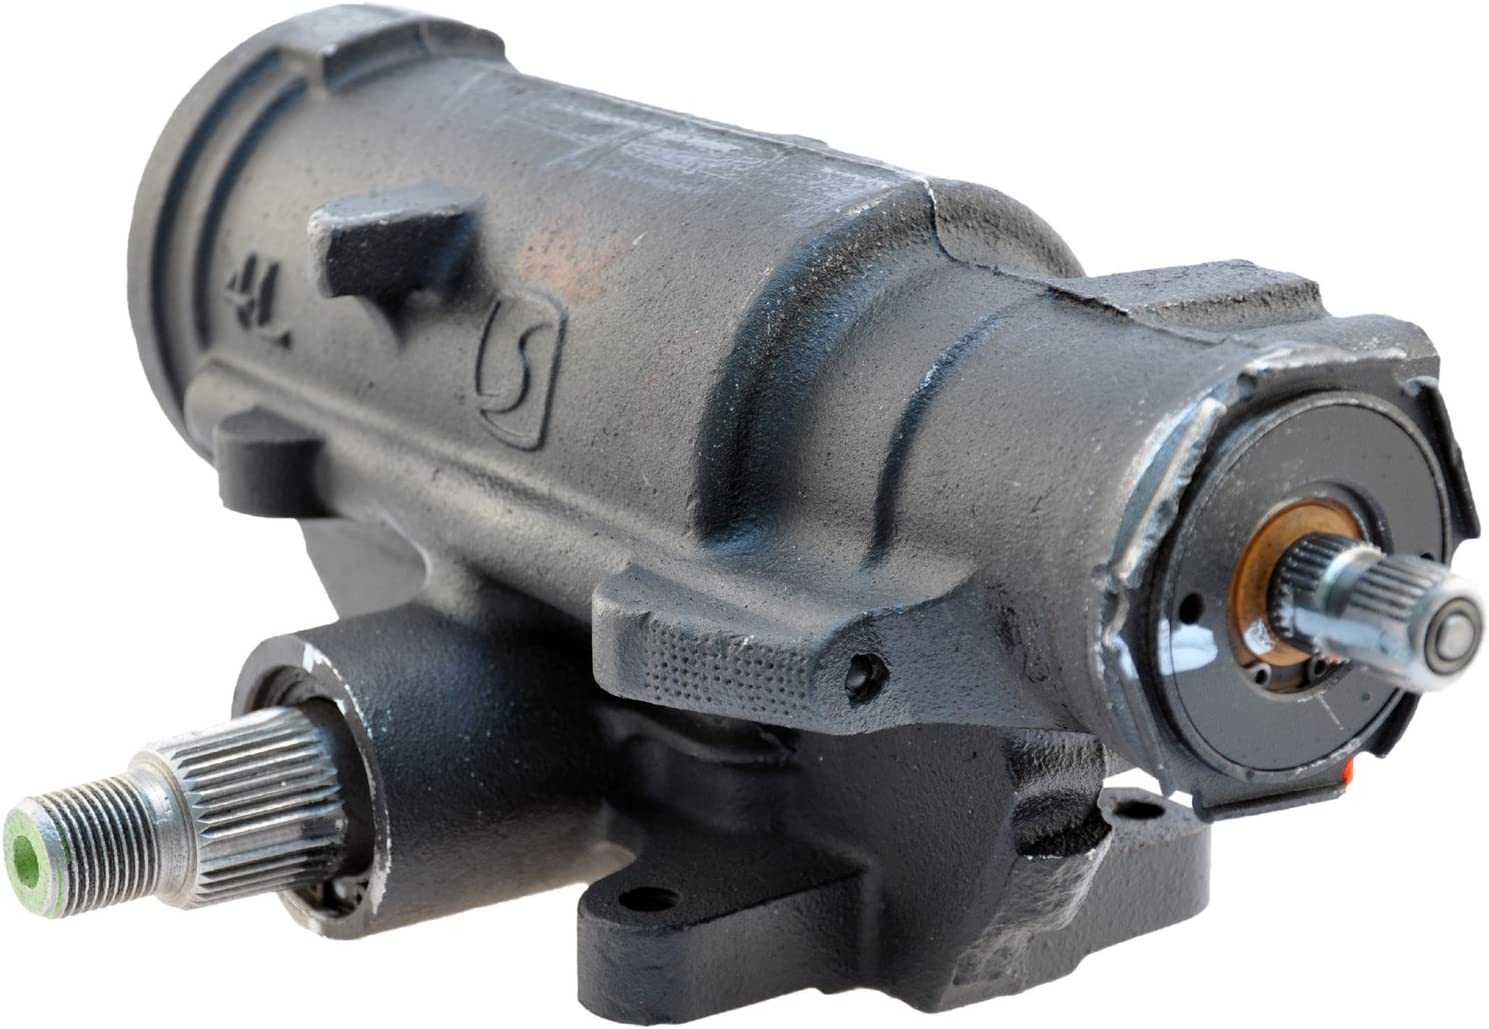 Remanufactured ACDelco 36G0210 Professional Steering Gear without Pitman Arm